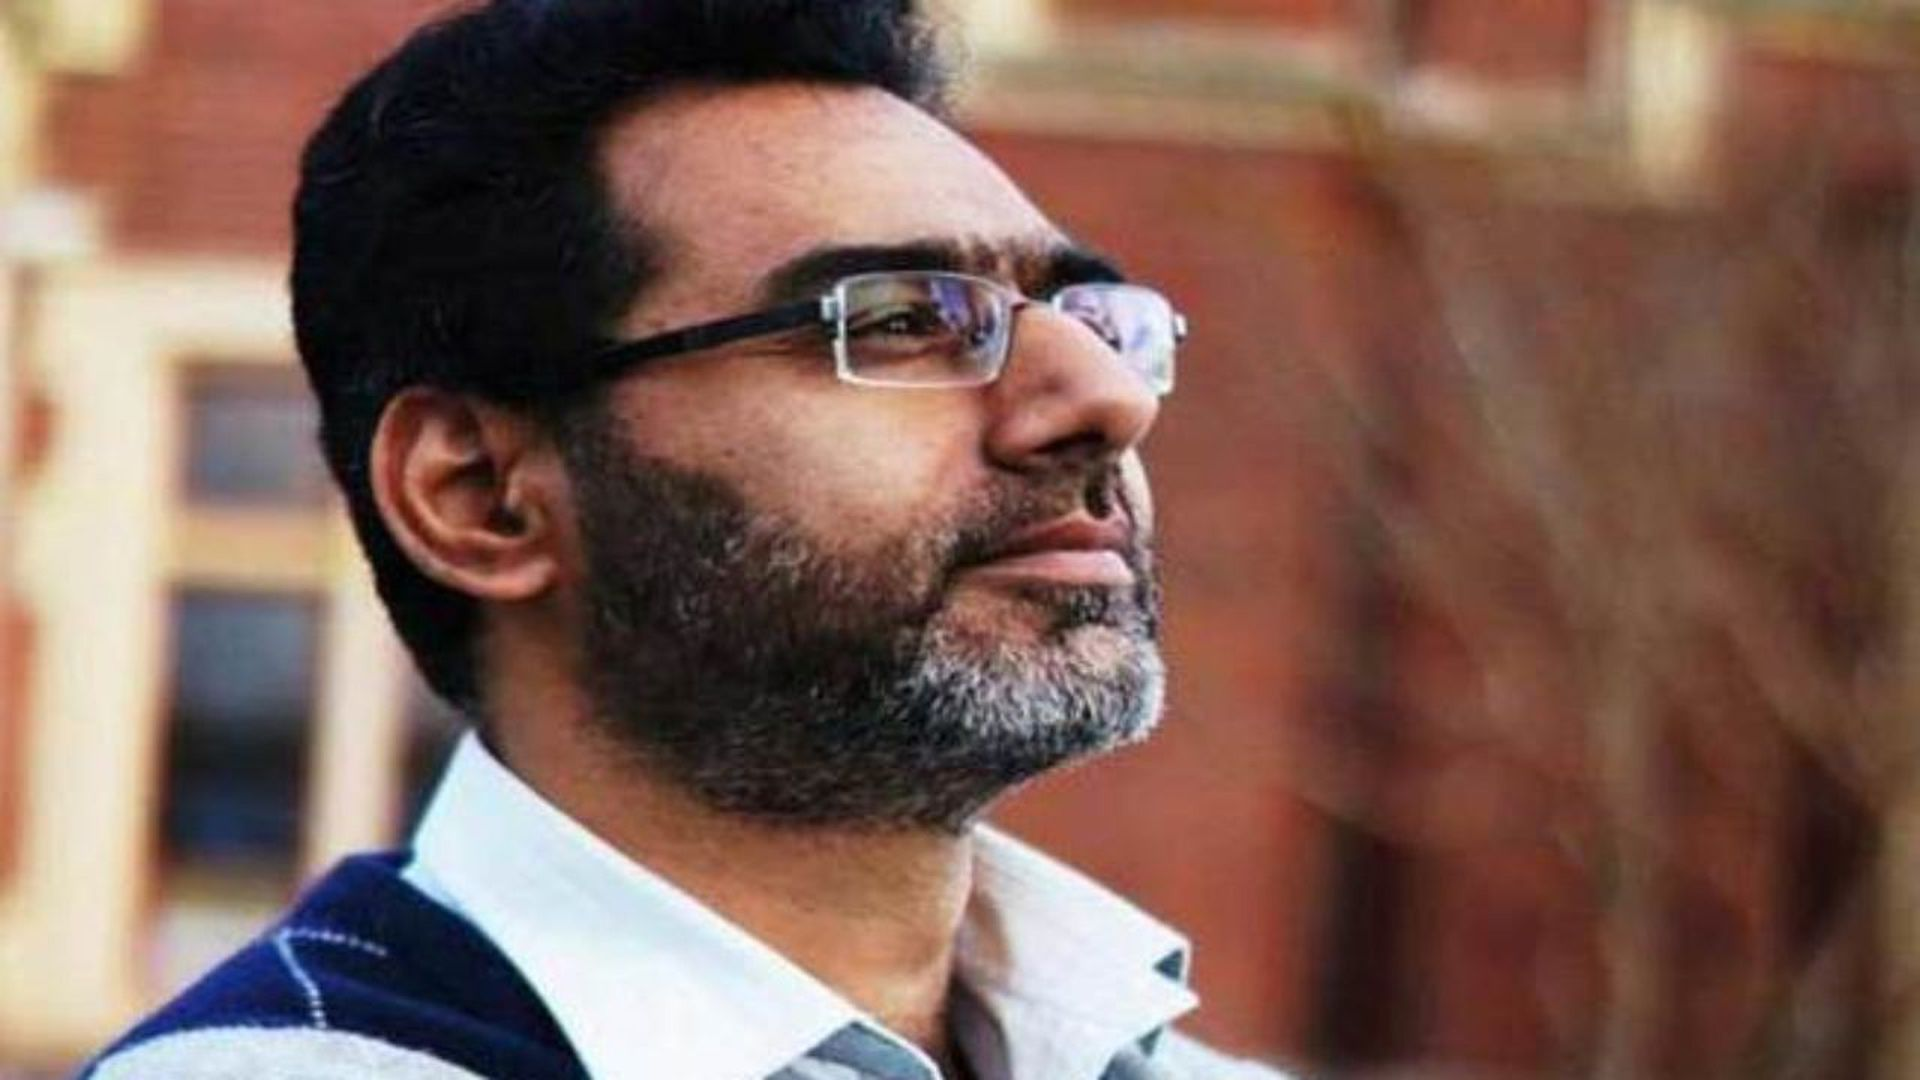 Naeem Rashid will be honoured posthumously with a national award.